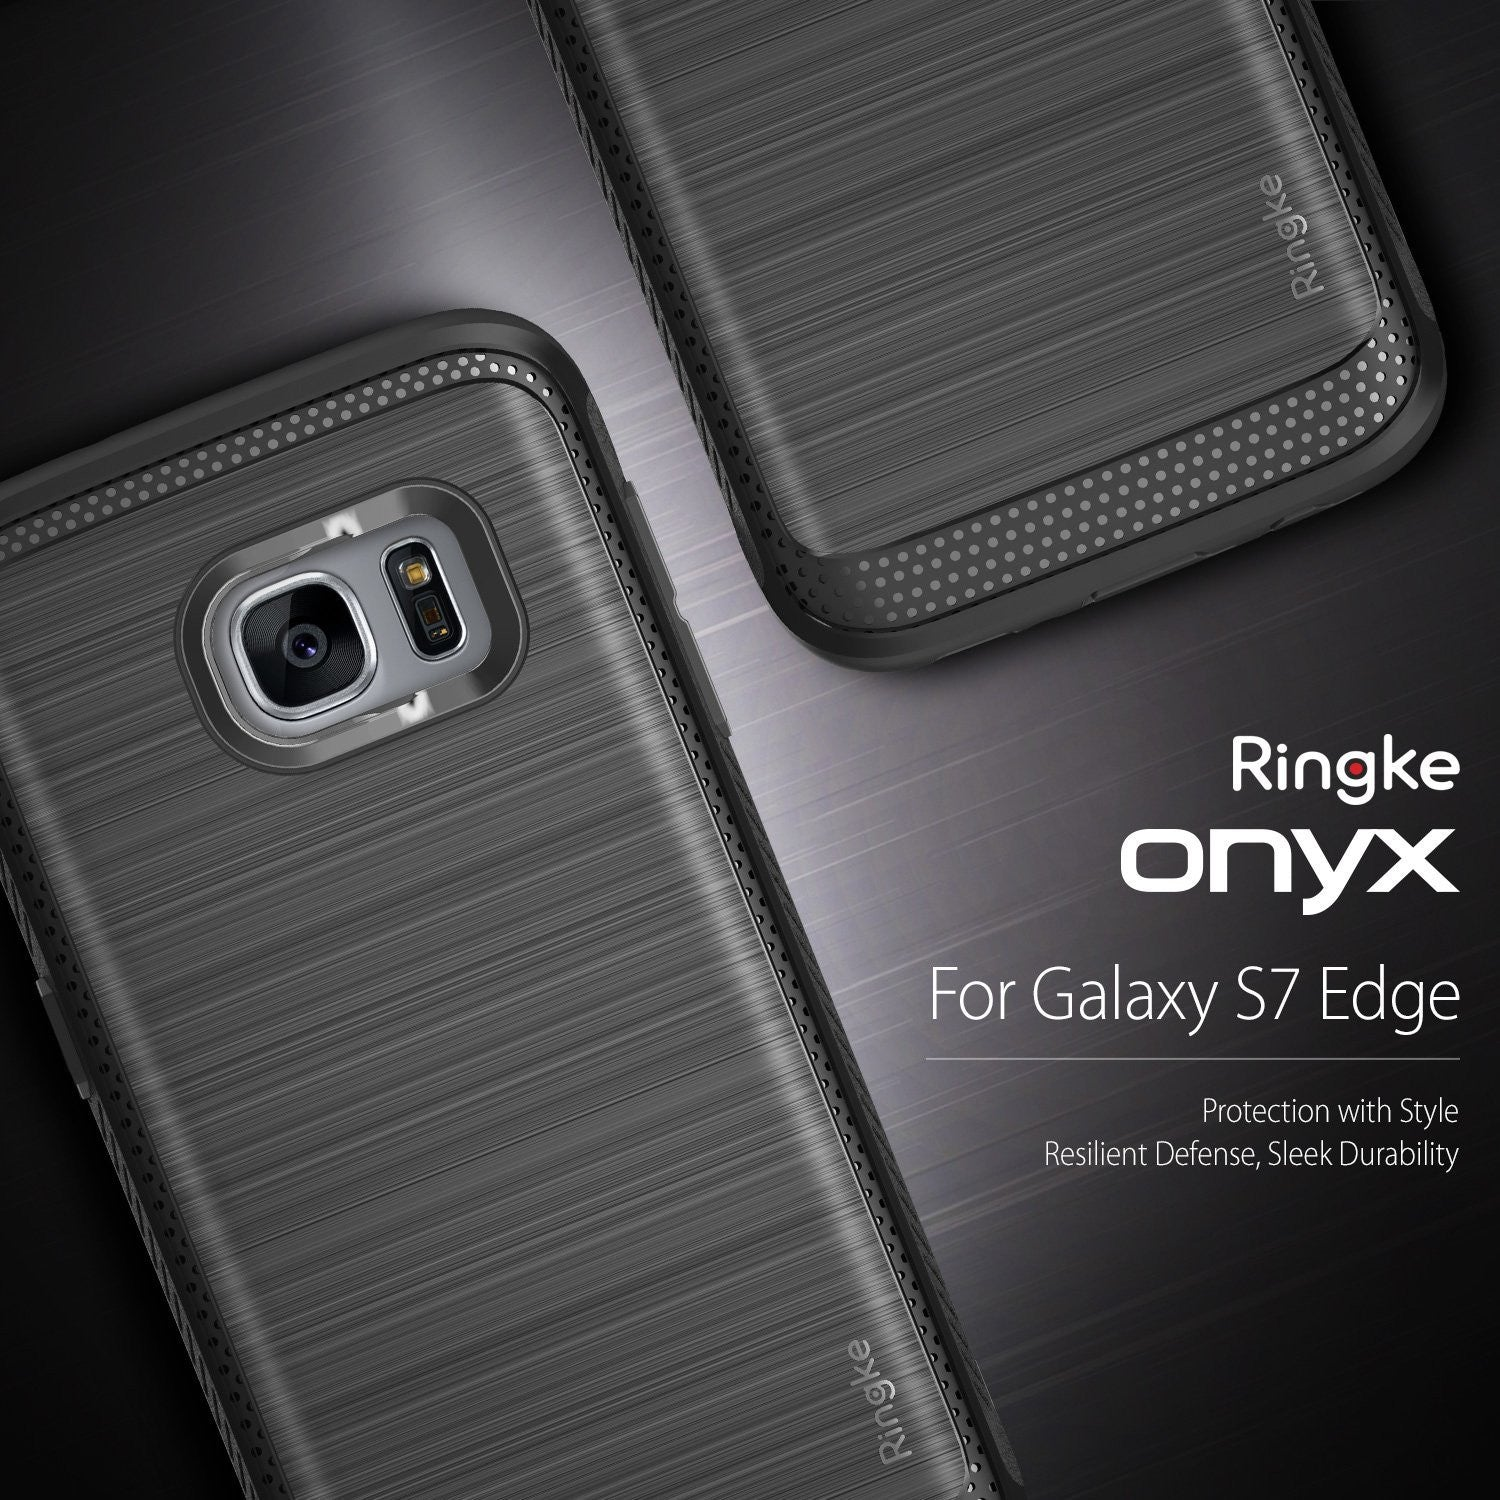 ringke onyx rugged flexible tpu shockproof cover case for galaxy s7 edge